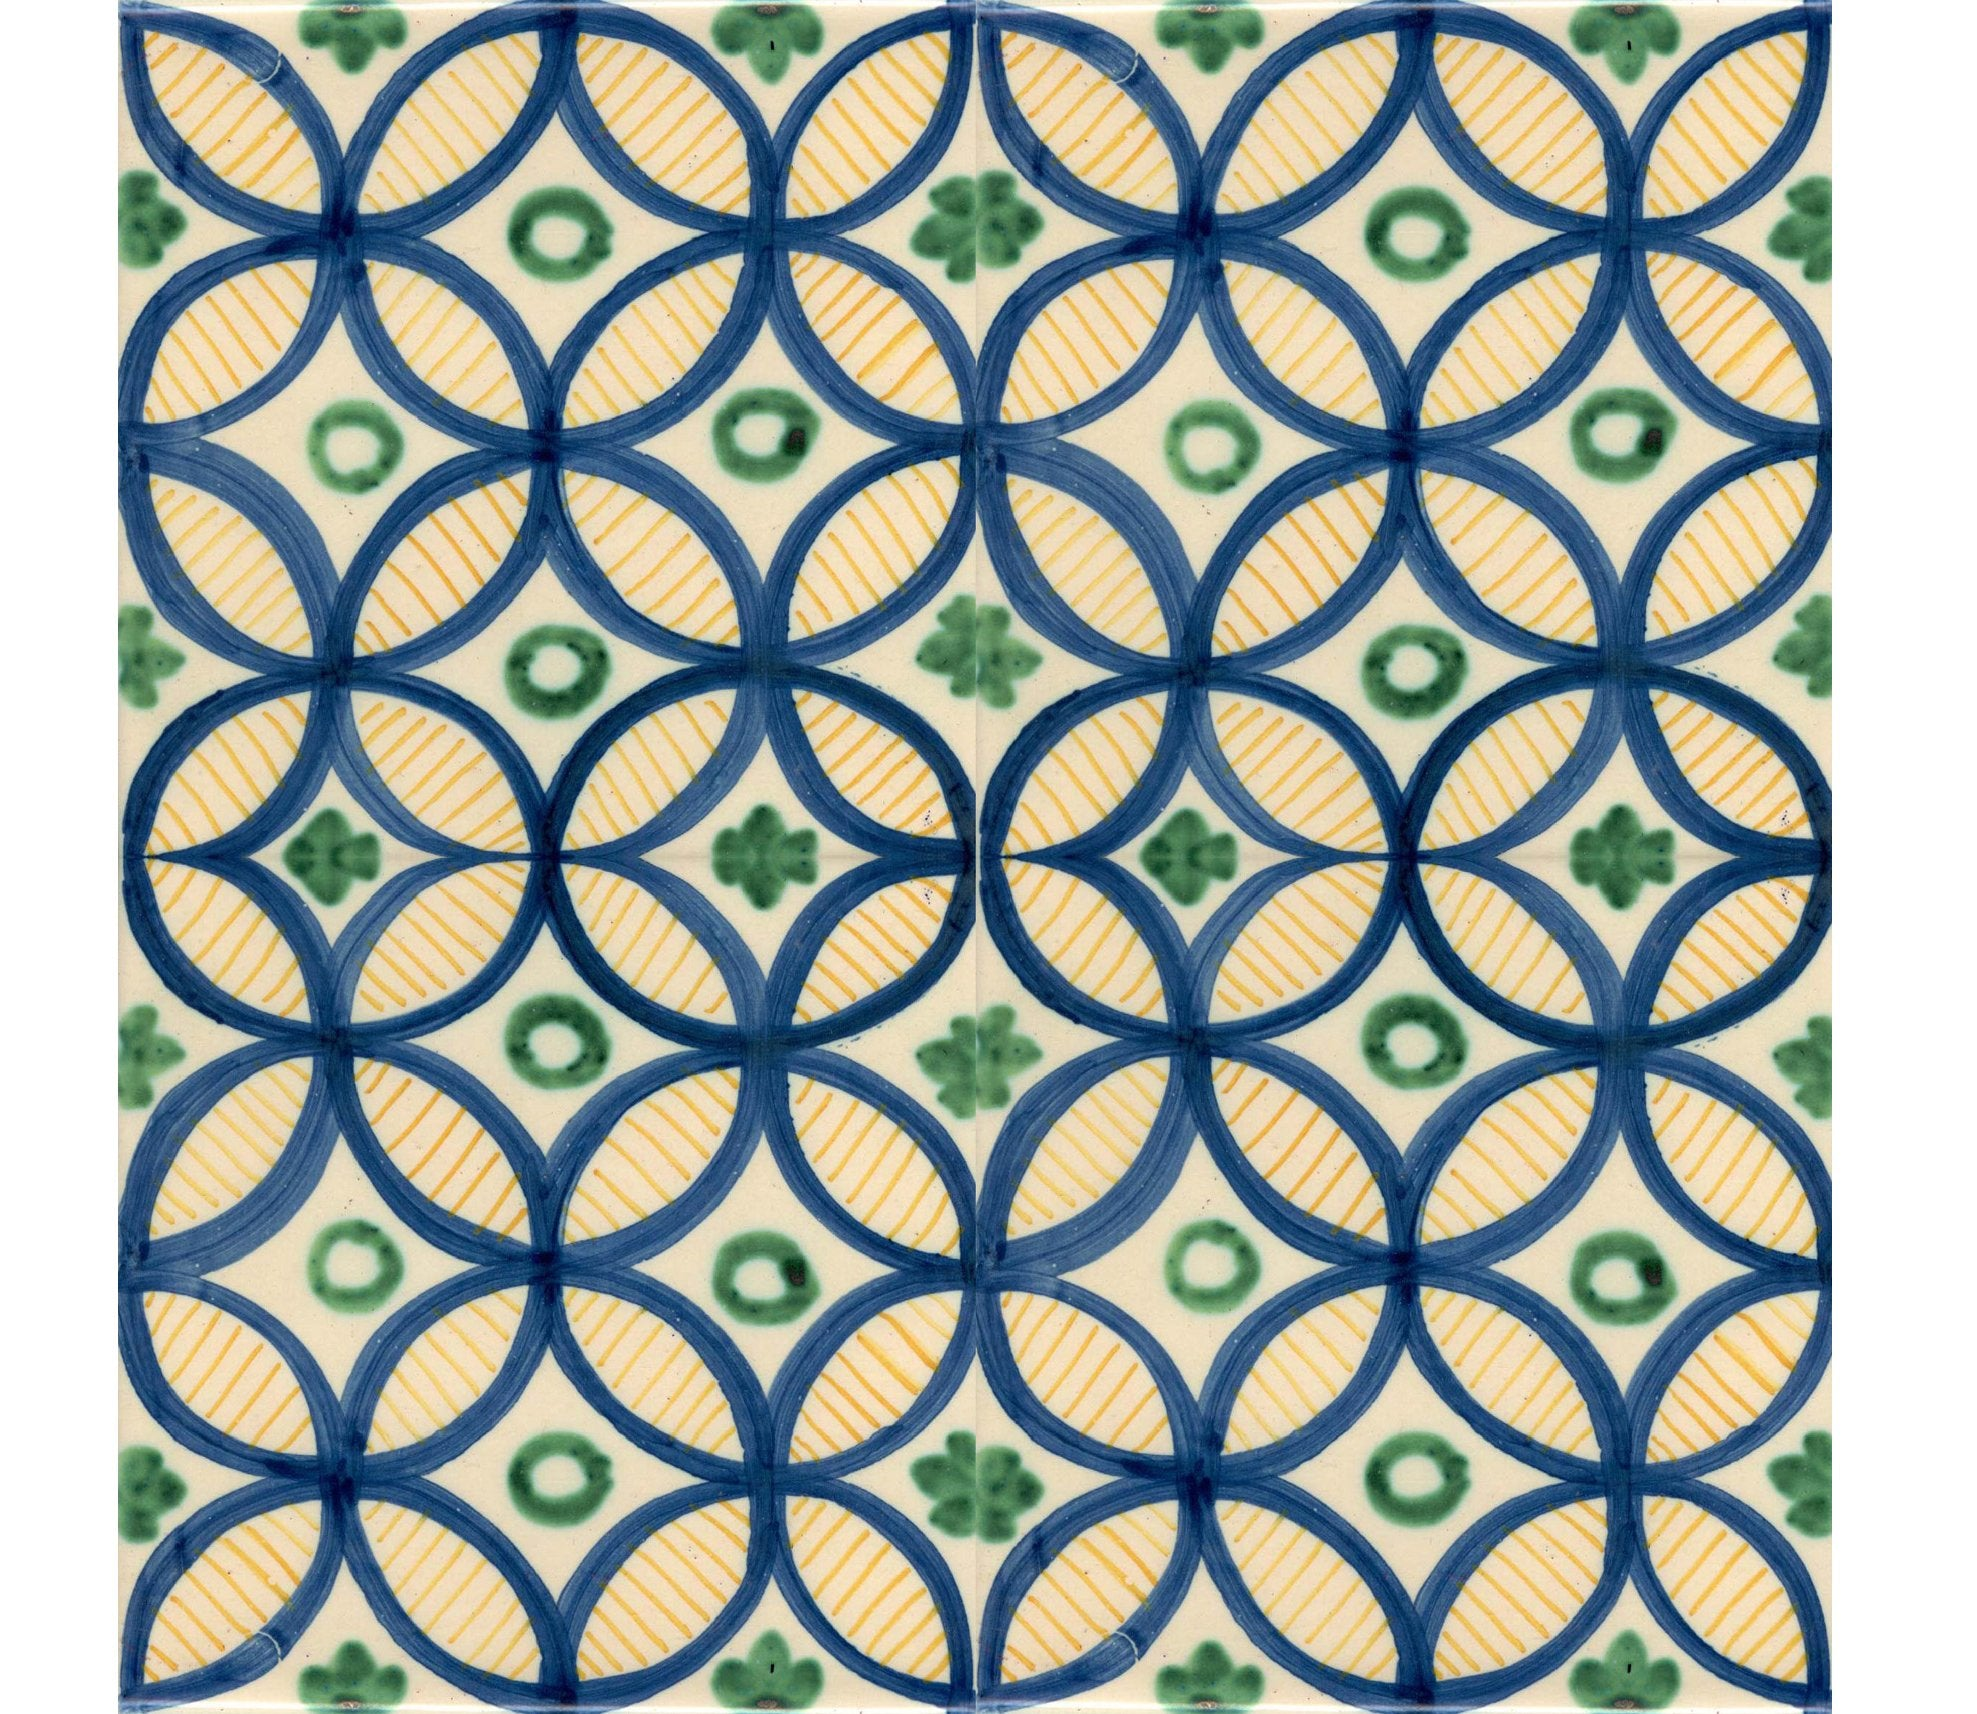 Series S Handpainted Tiles Product Image 49